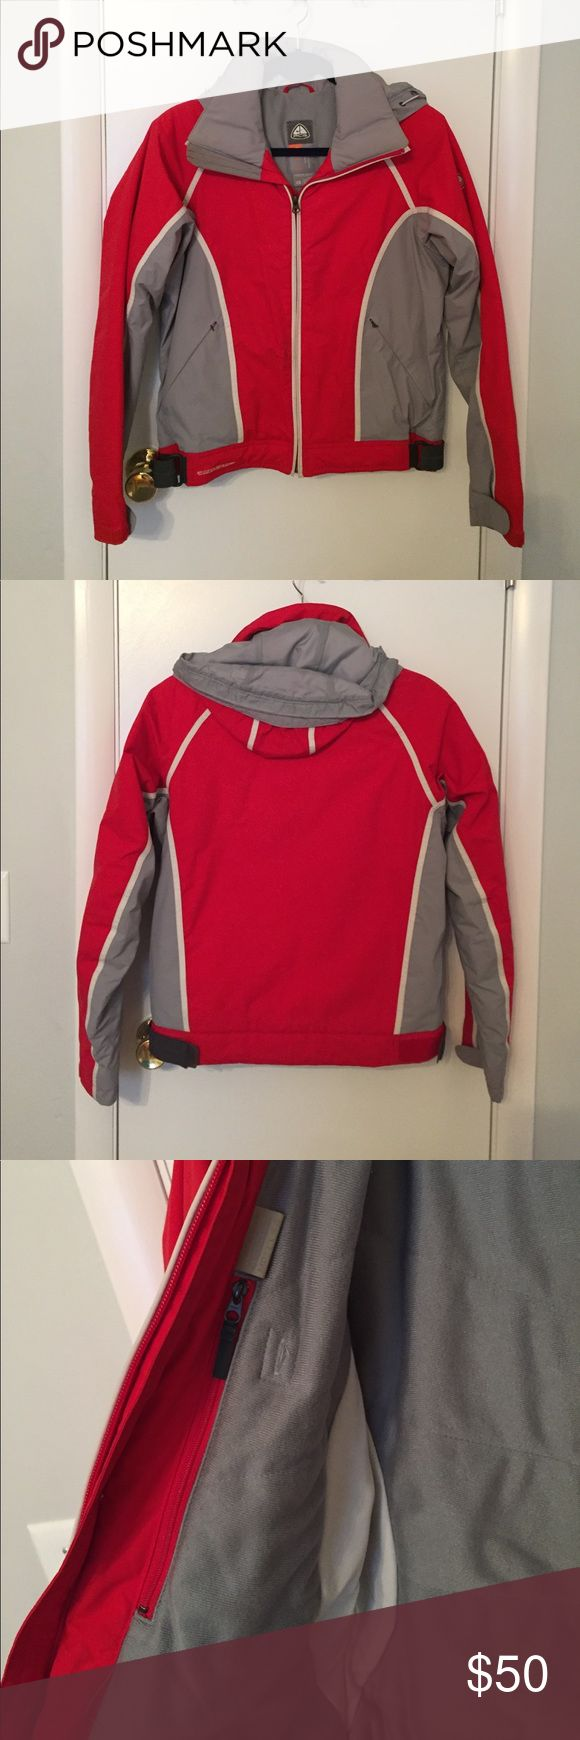 Nike ACG Winter Jacket Gentle worn Nike AGC red grey and white winter jacket with removable hood. Nike ACG Jackets & Coats